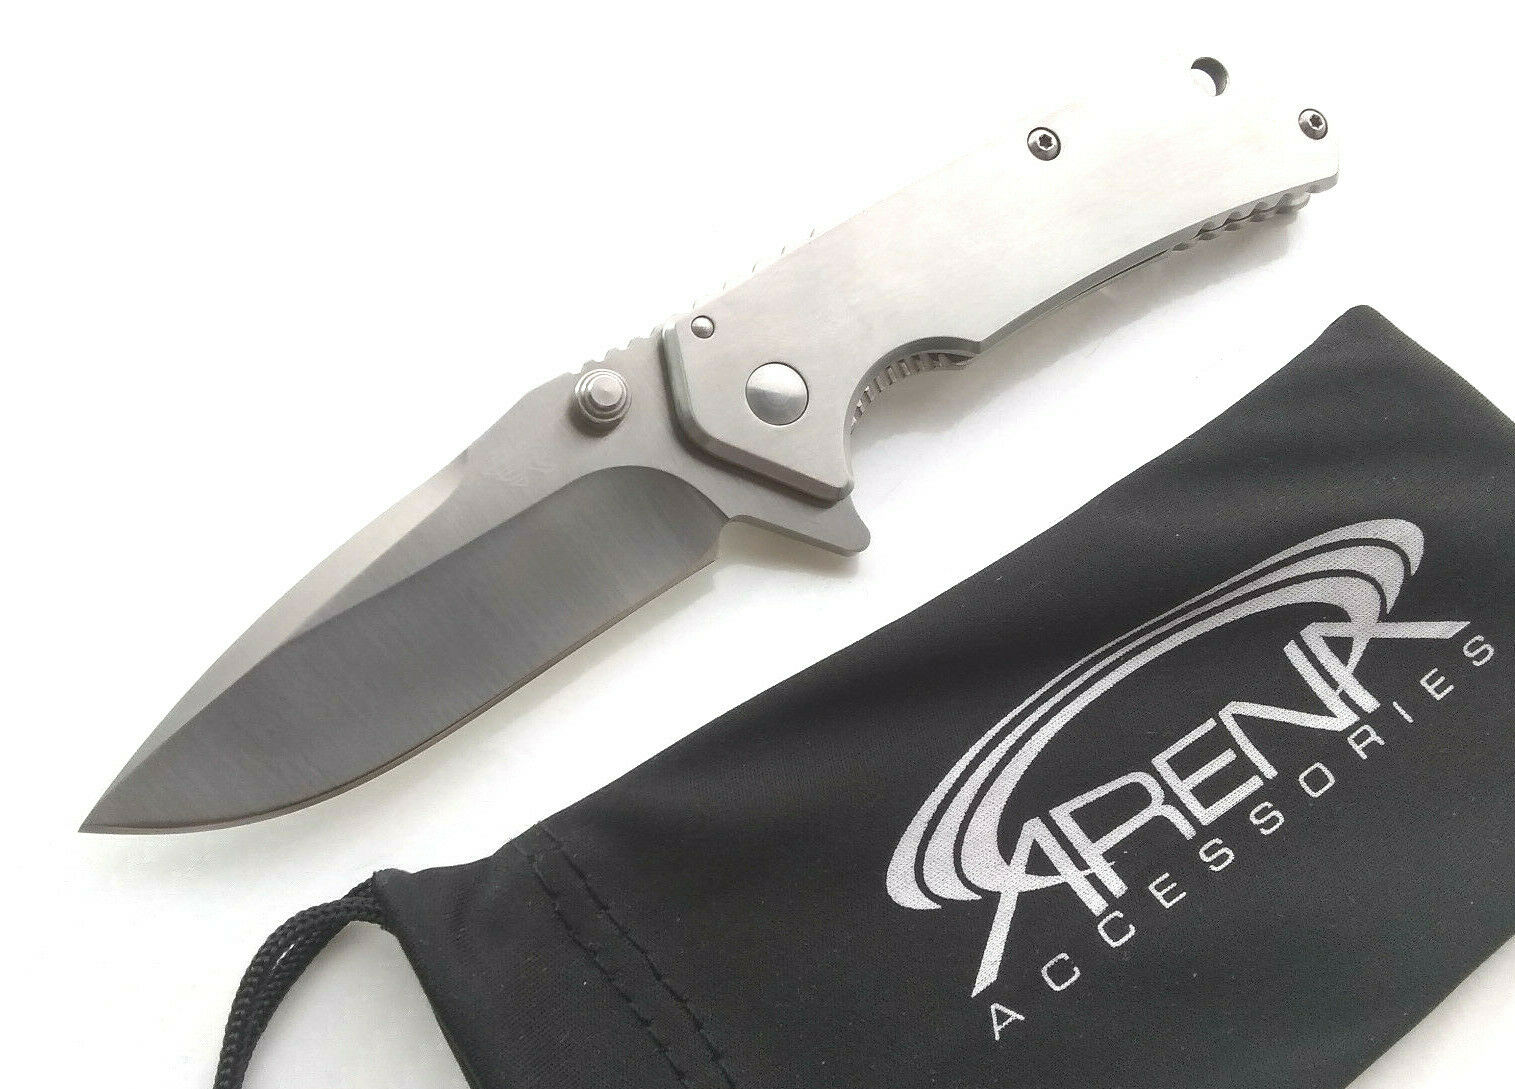 Sanrenmu 7056 Manual FrameLock Flipper Pocket Knife 8Cr14 Liang Gang Design Small Everyday Carry